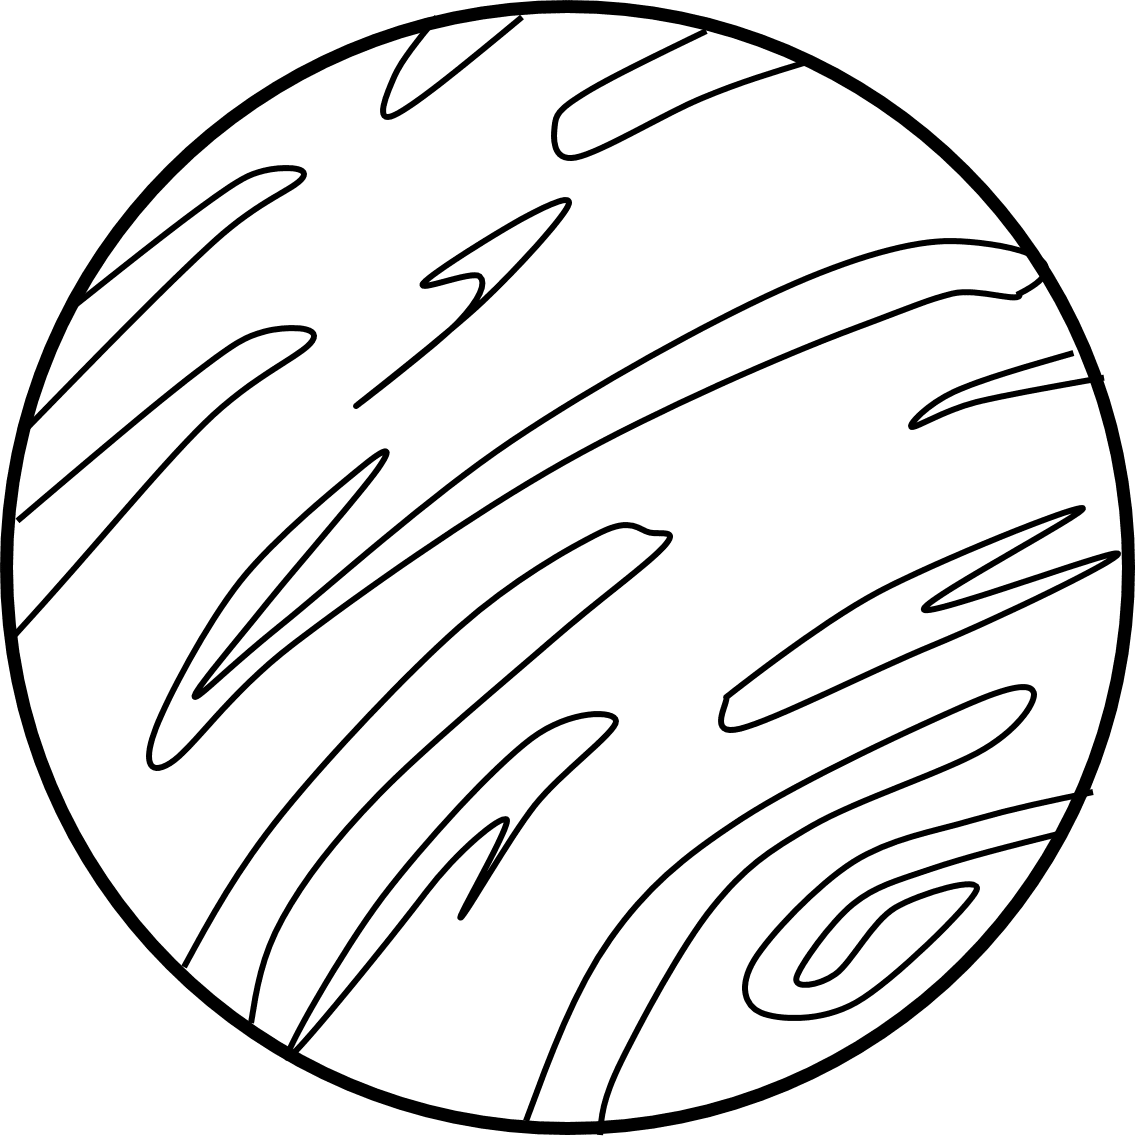 Earth drawing venus planet. Planets clipart black and white